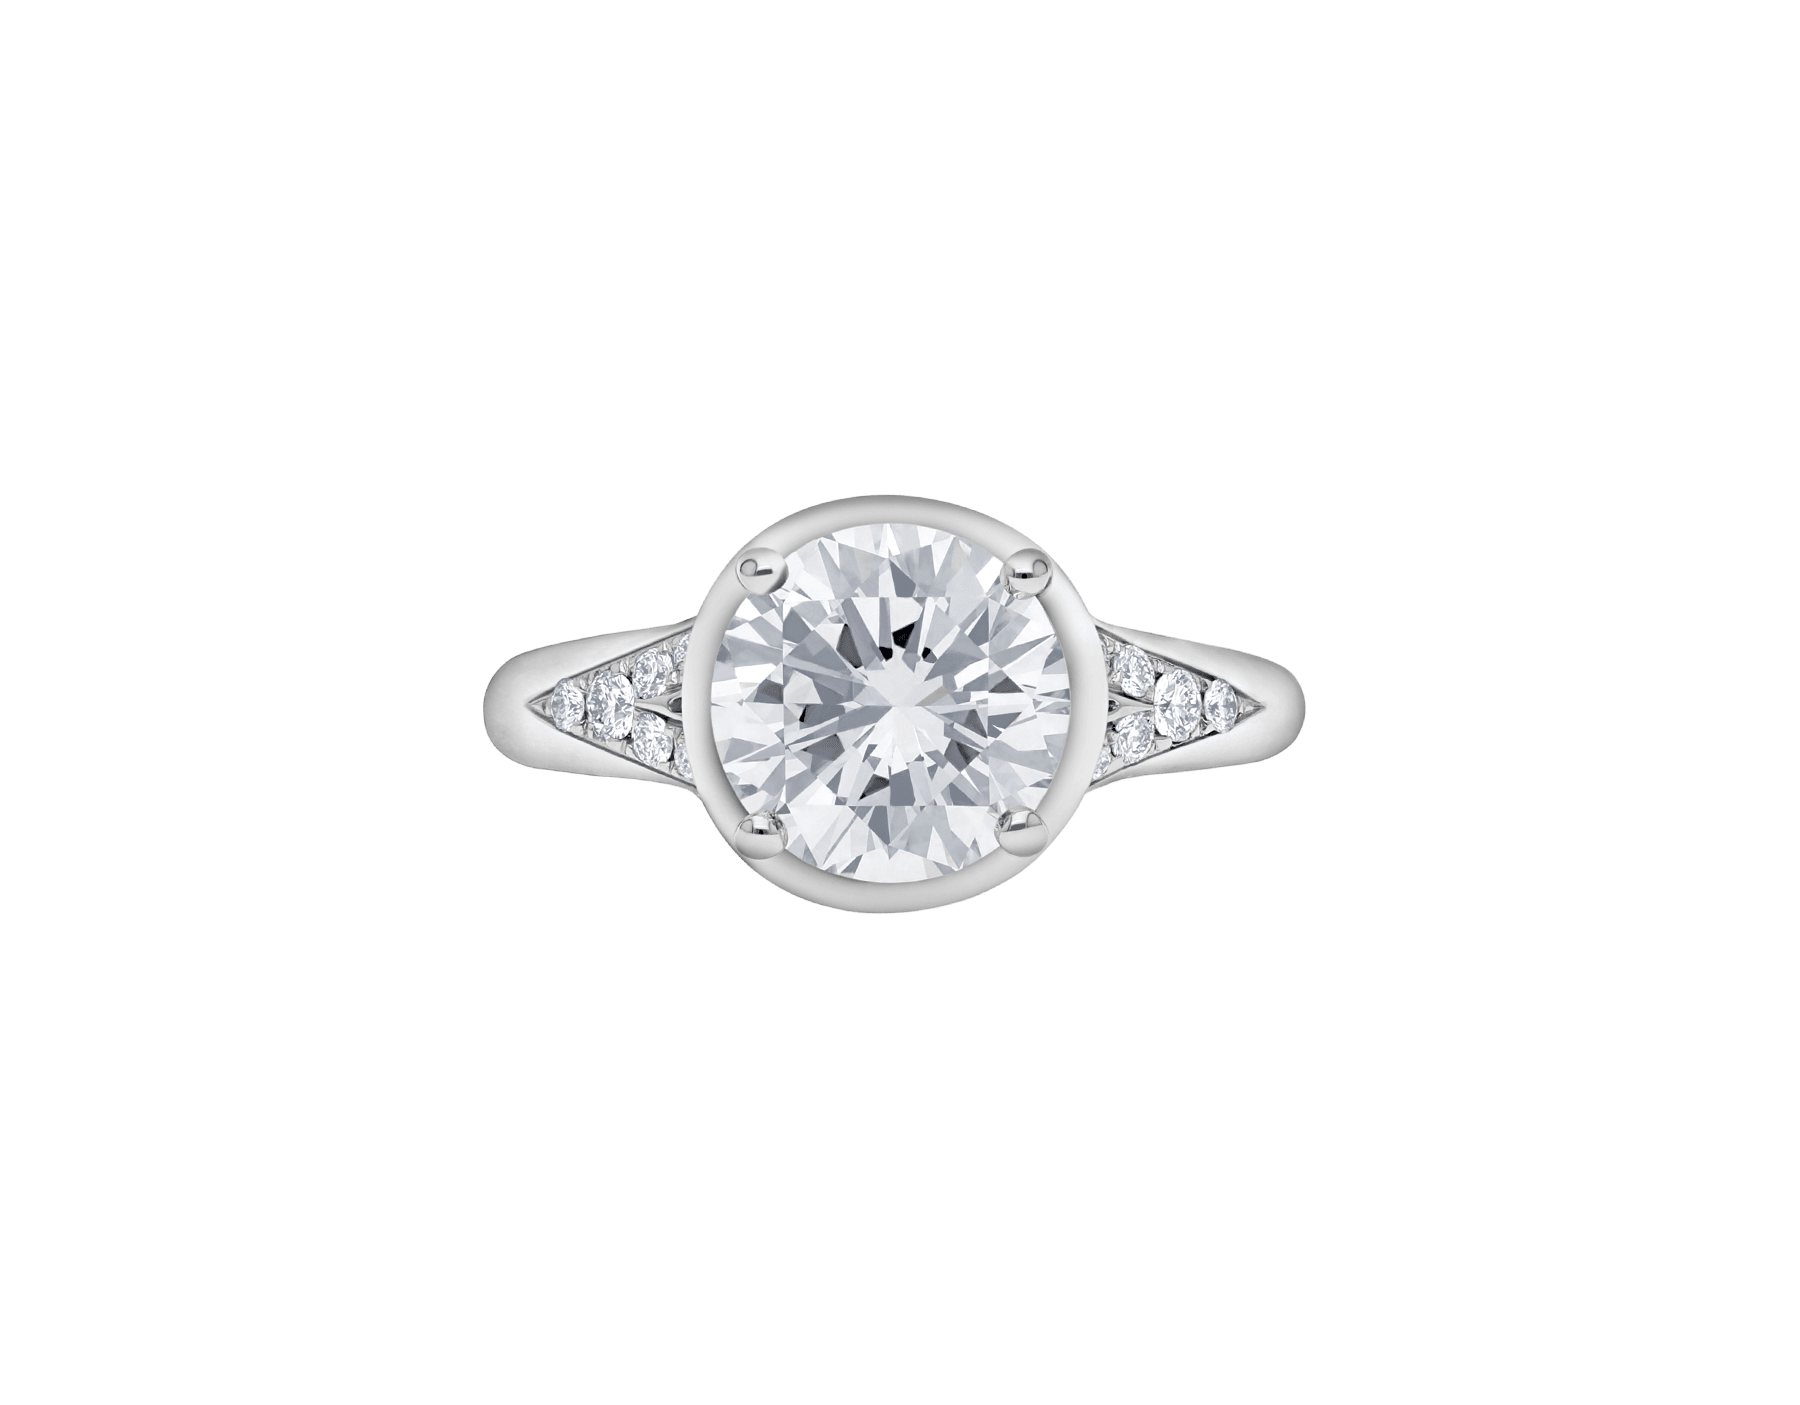 Incontro d'Amore ring in platinum with round brilliant-cut diamond and pavé diamonds. Available from 0.20 ct. As its pavé rows embrace a diamond apex, Incontro d'Amore joins two hearts as one. 355808 image 3